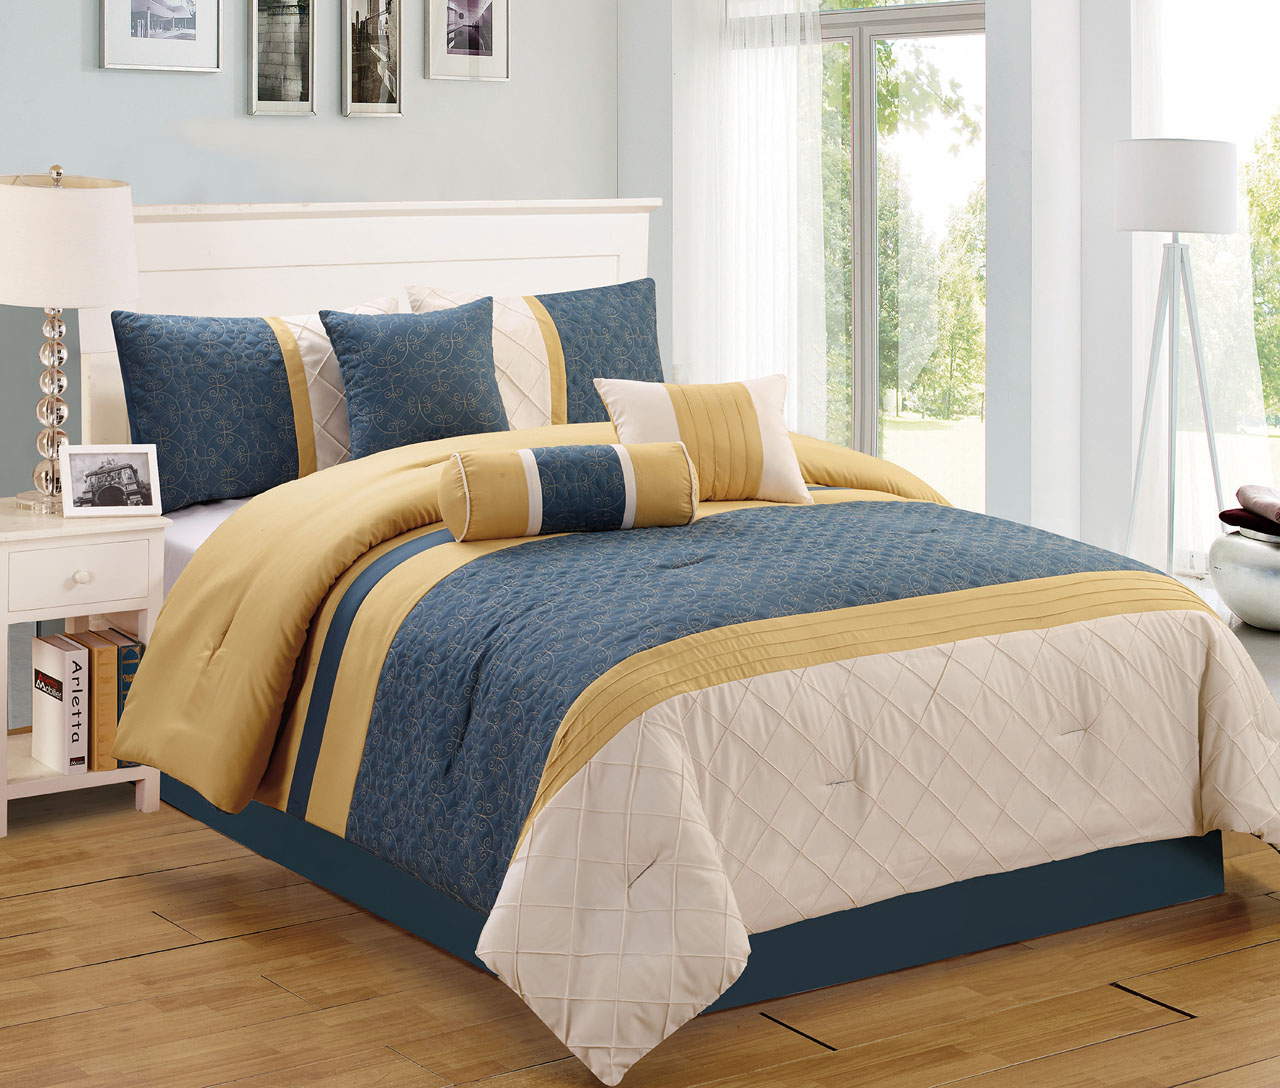 cobalt blue and brown quilt sets in